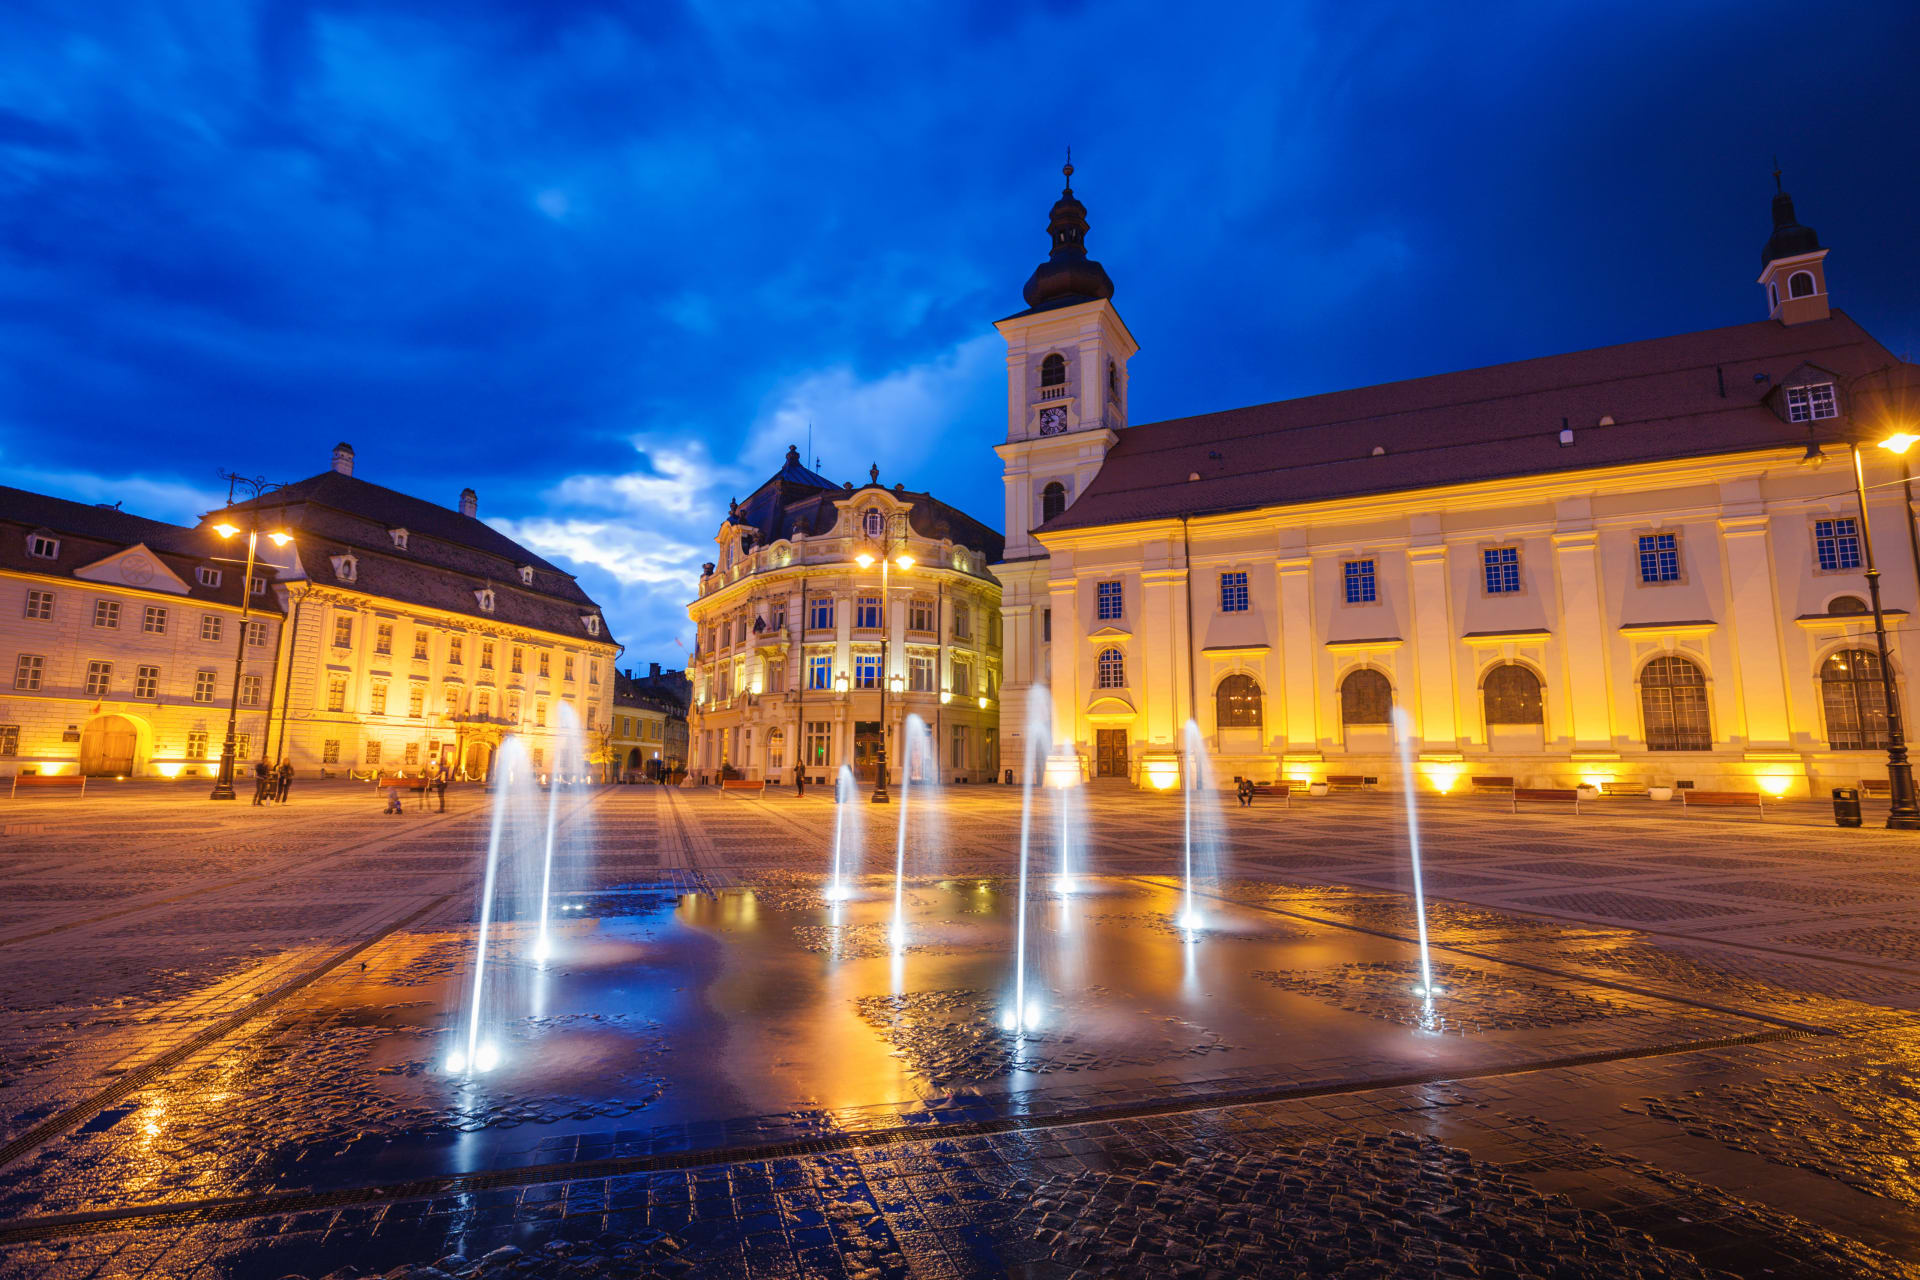 Transylvania - The medieval city of Sibiu, by night